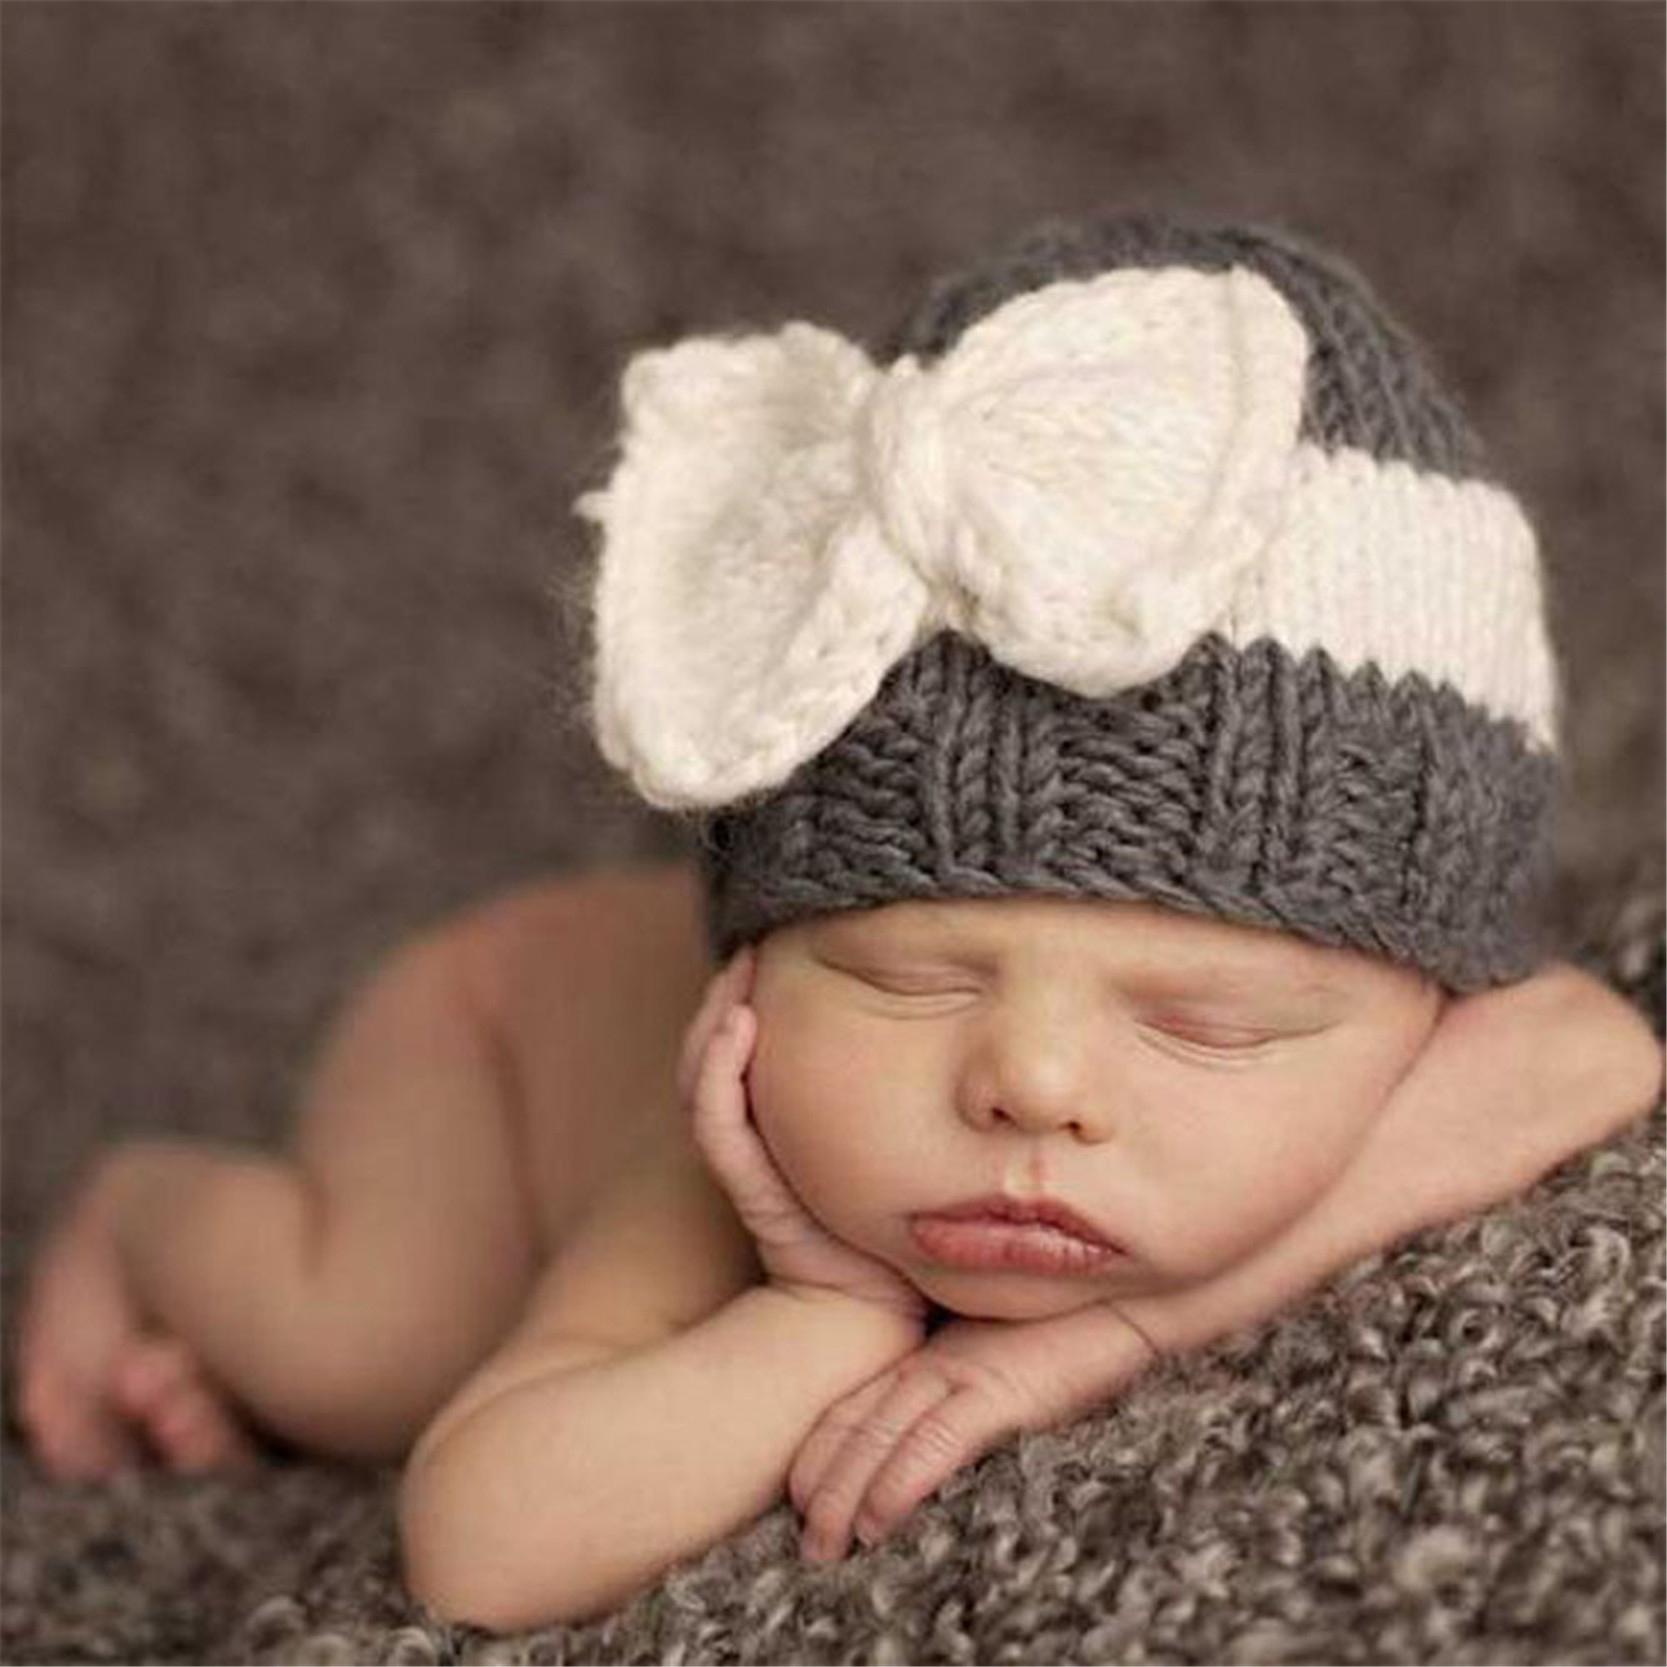 037aea0f08b New Cute Newborn Baby Knitting Hat Bow Knot Cap Infant Girl Winter Warm  Beanie-in Hats   Caps from Mother   Kids on Aliexpress.com